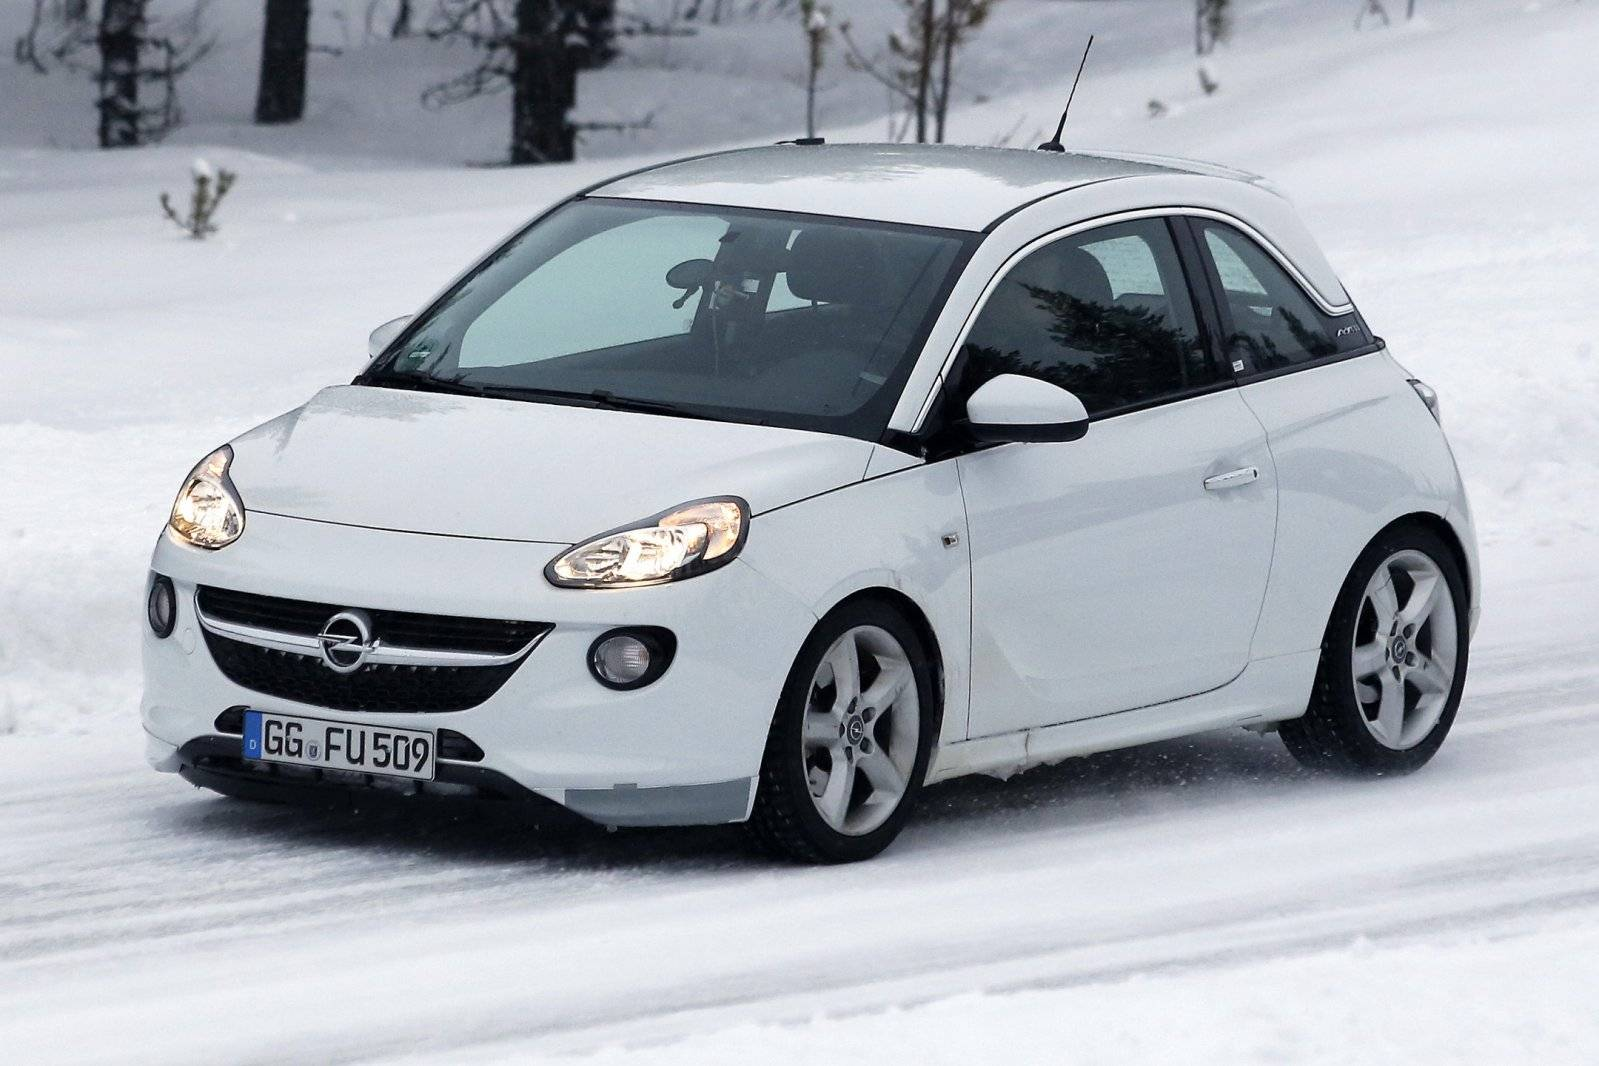 opel adam s opent jacht op abarth 500 spyshots. Black Bedroom Furniture Sets. Home Design Ideas